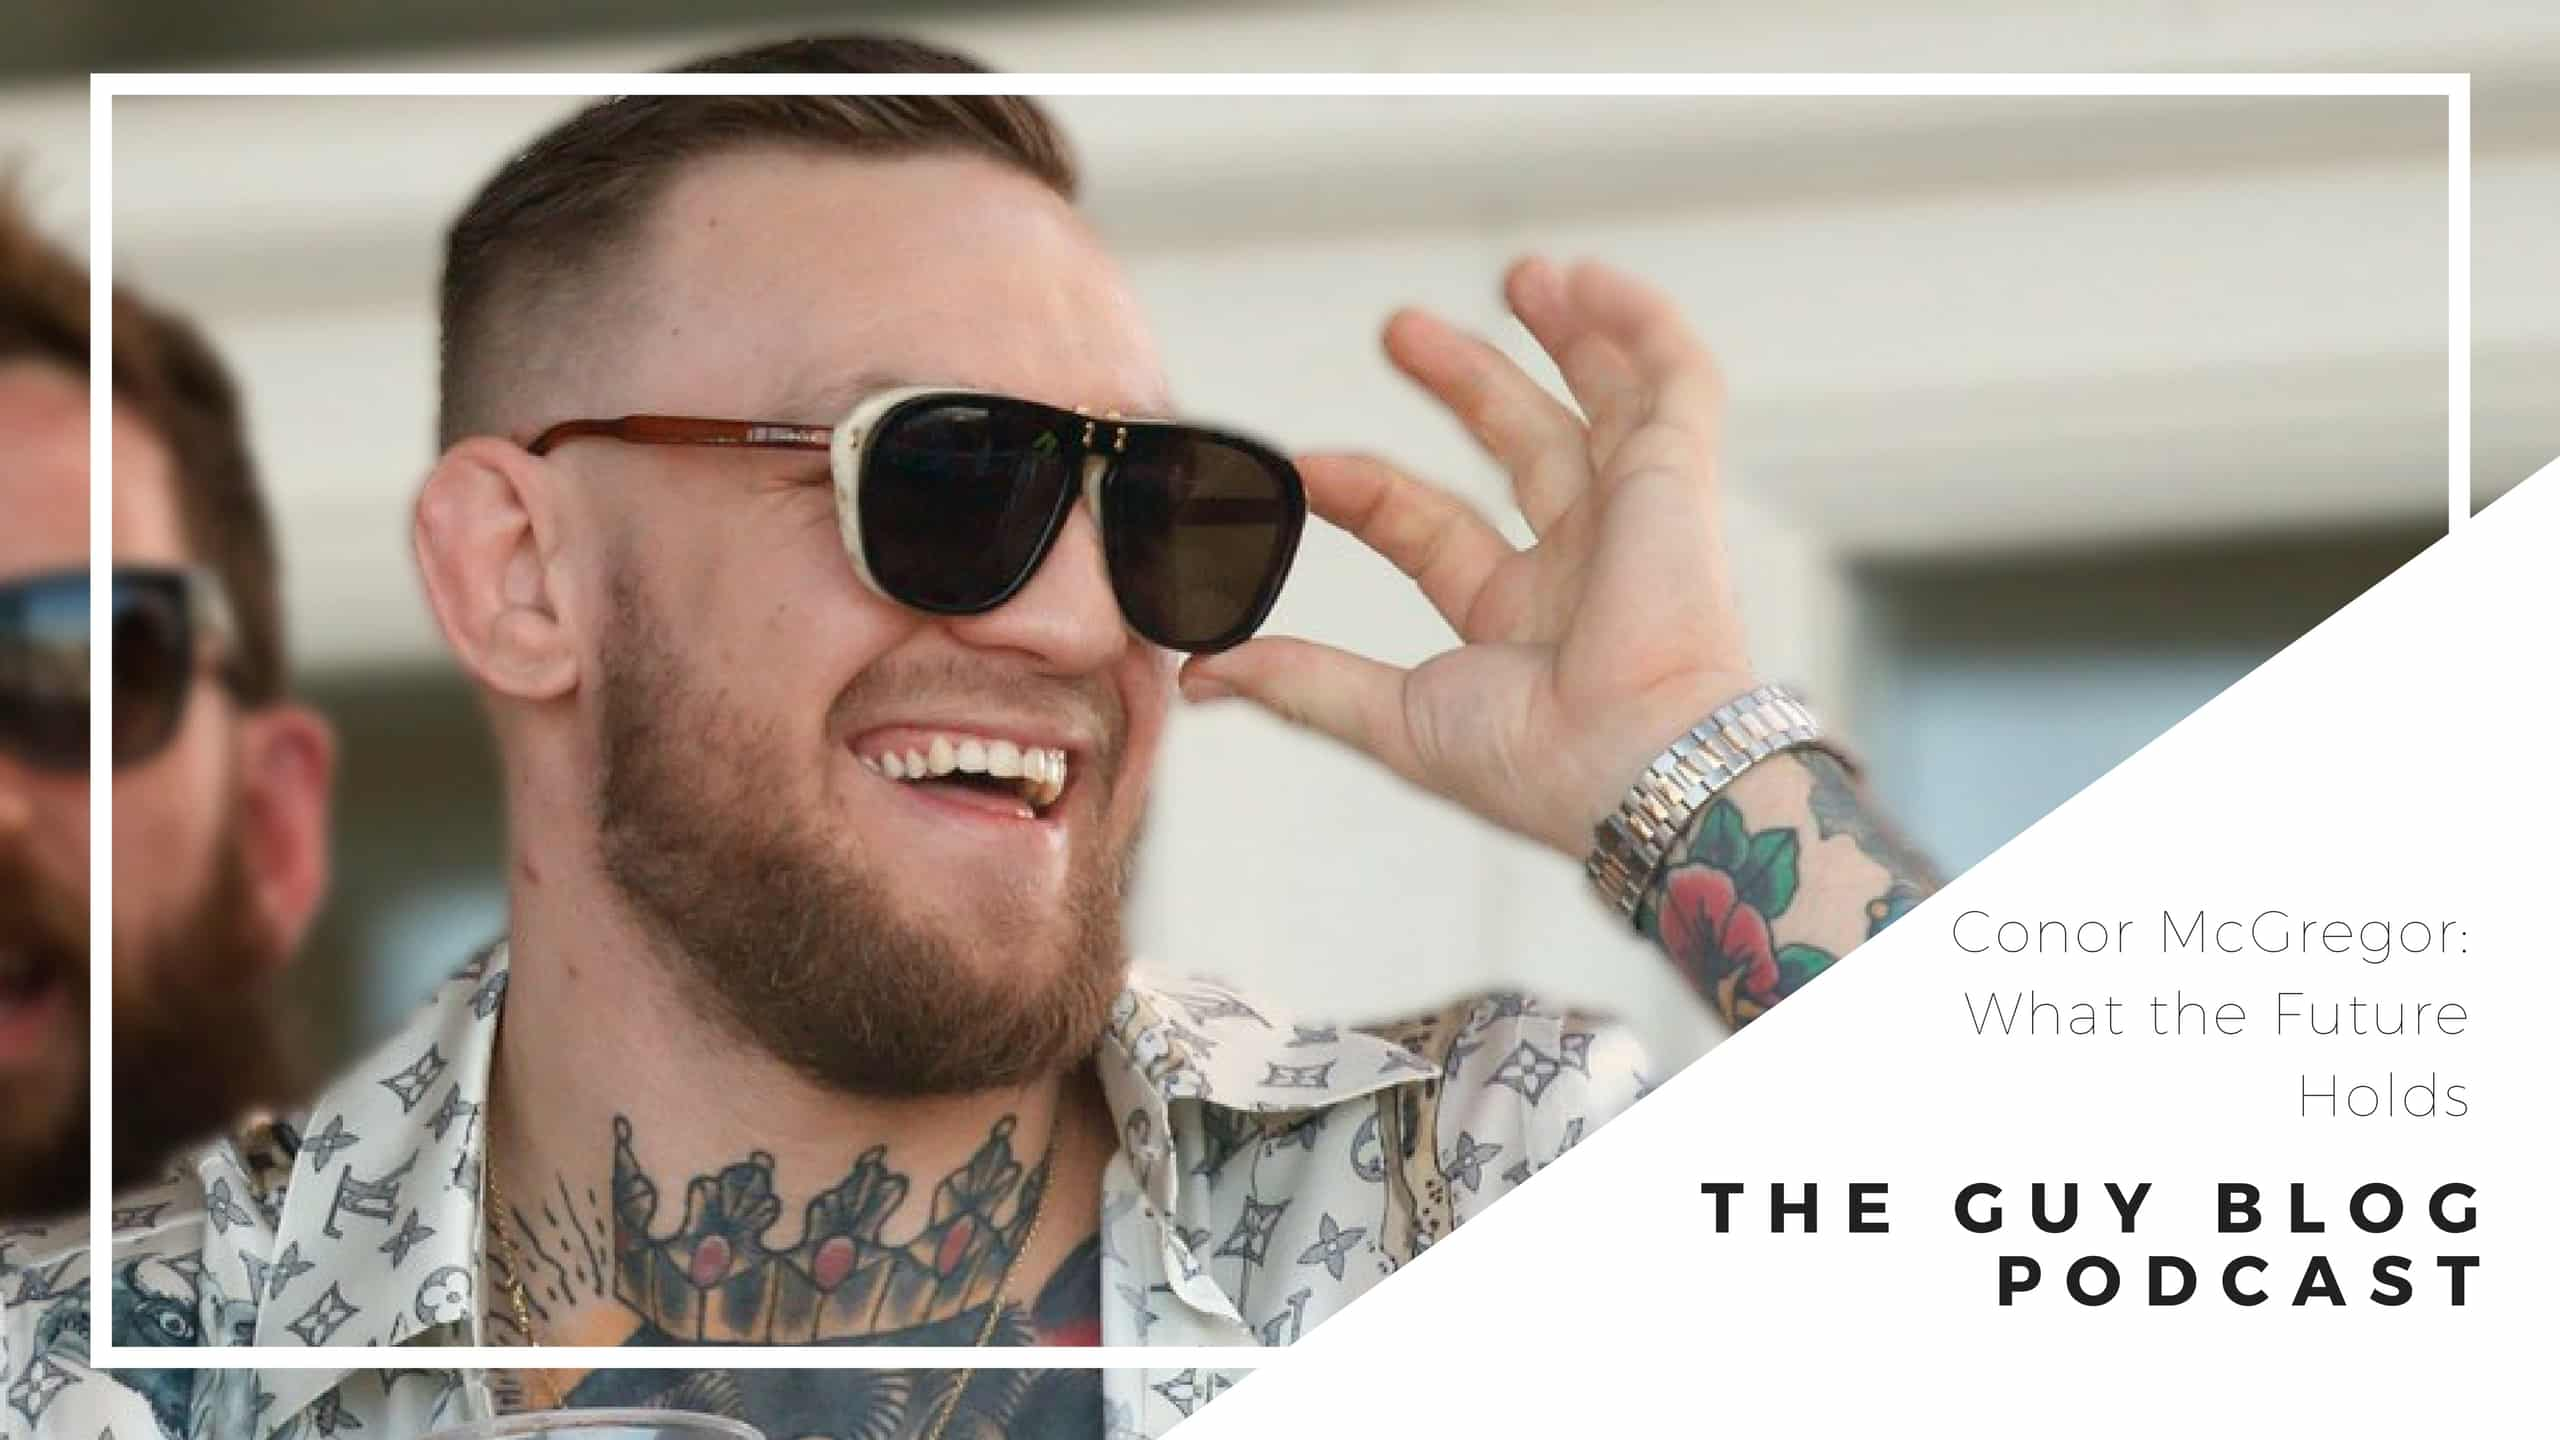 TGBP 047 Conor McGregor: What The Future Holds